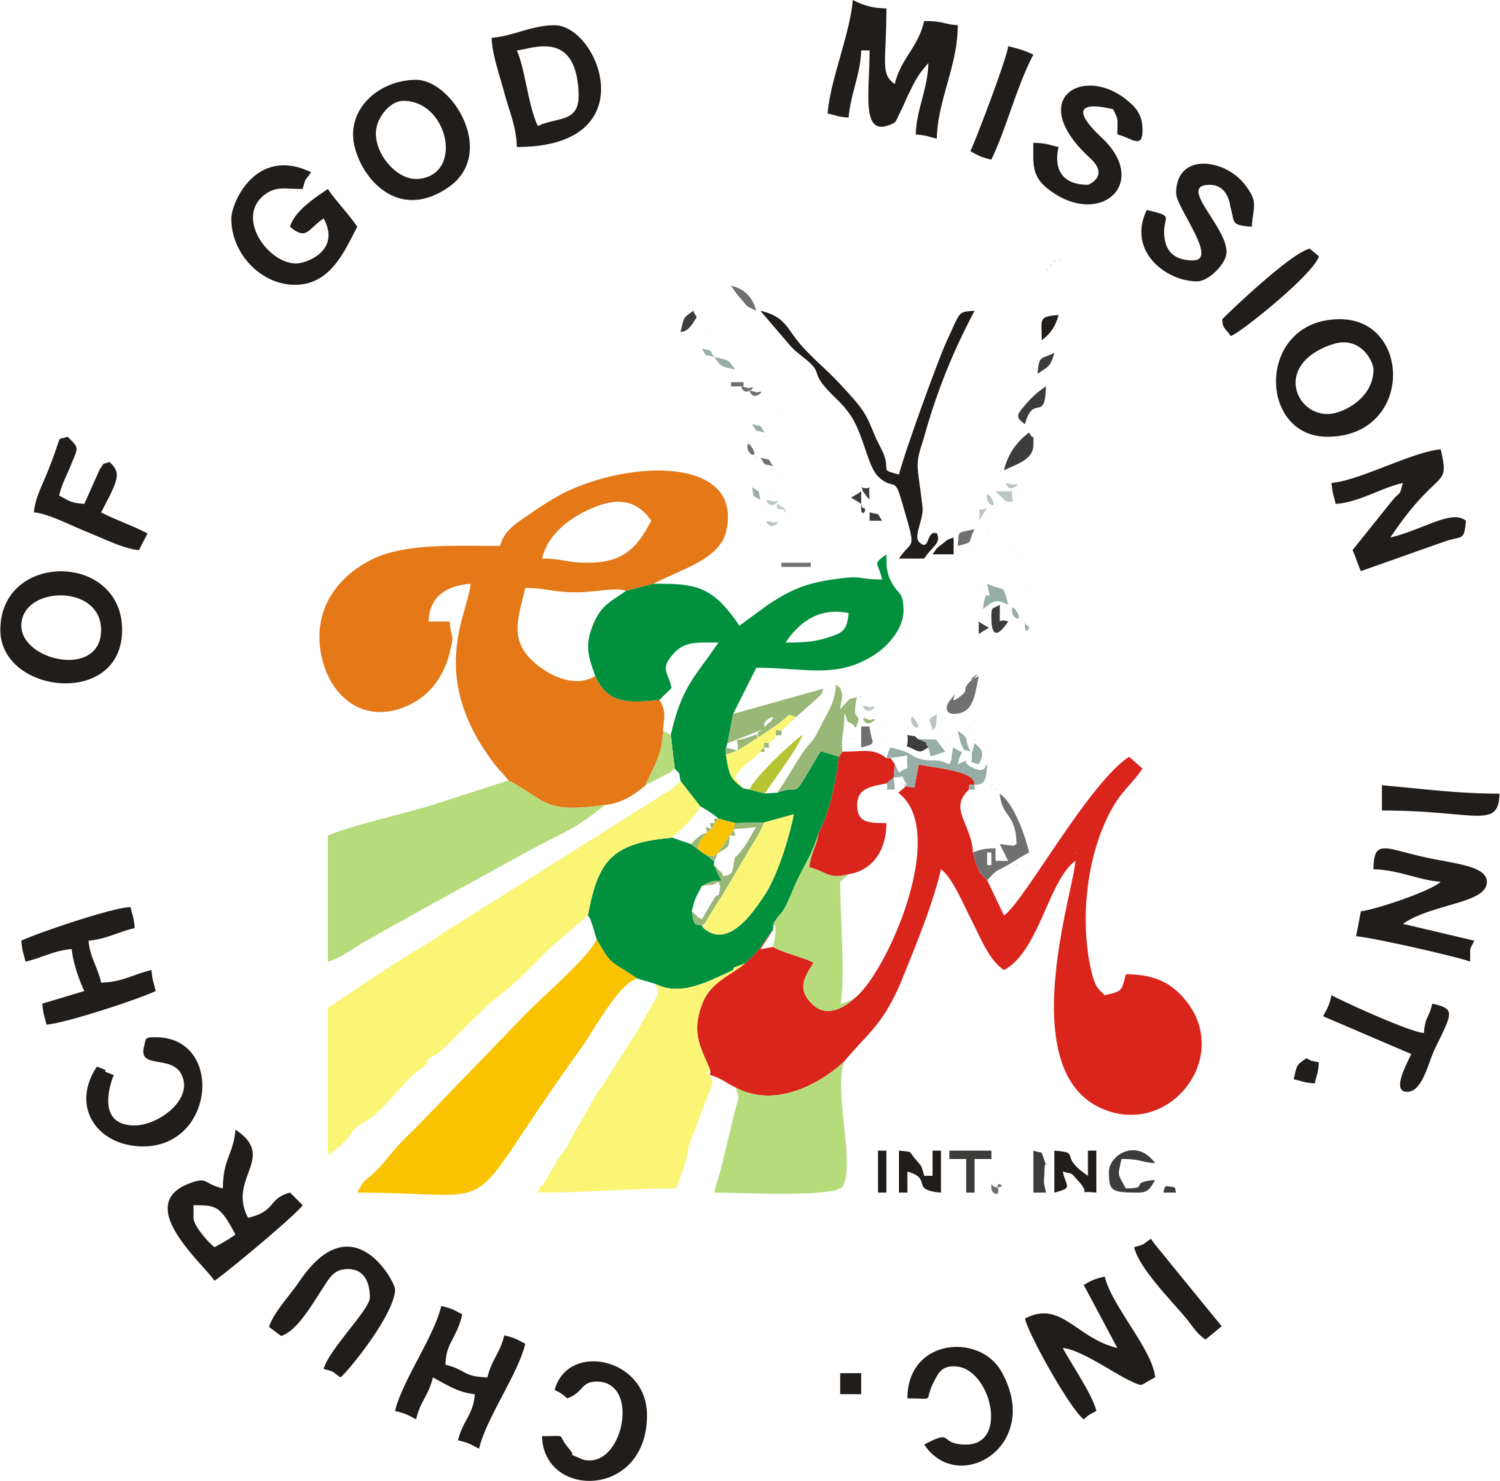 Church of God Mission International - Common Impact Centre